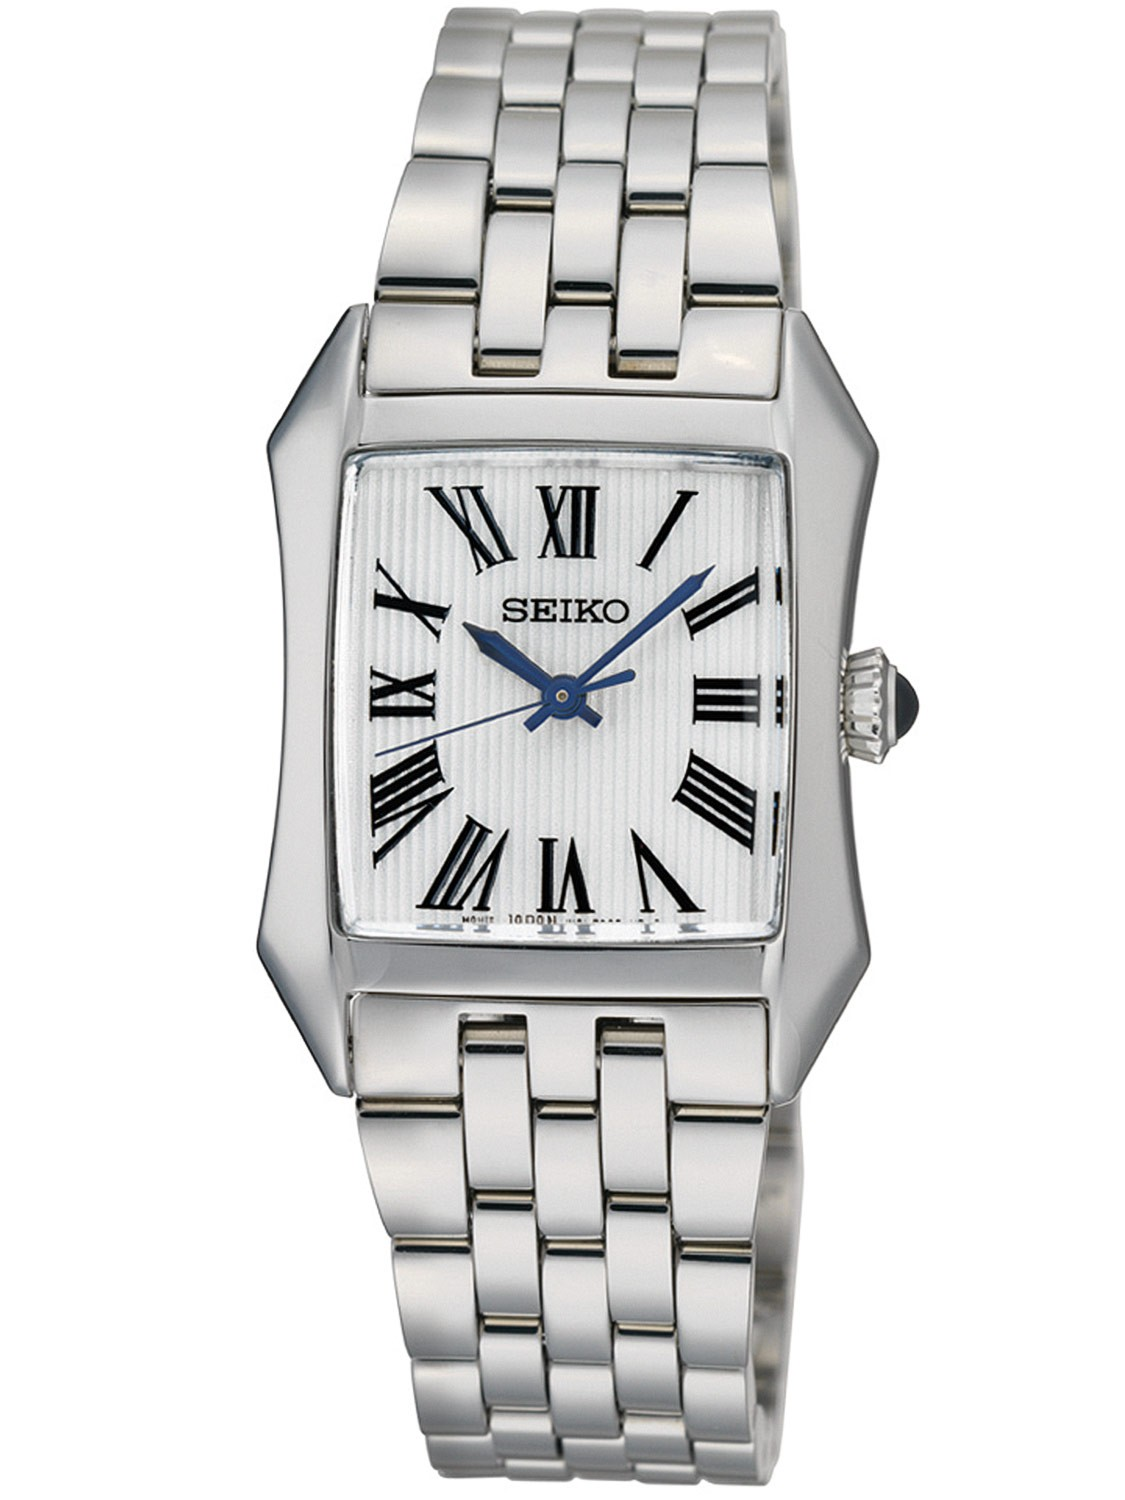 All Products Watchwatchesdiscount Free Template By Picaflor Tissot Ladies Stylis T T0282101105700 Orologio Seiko Modern Classic Solo Tempo Lady Sxgp21p1